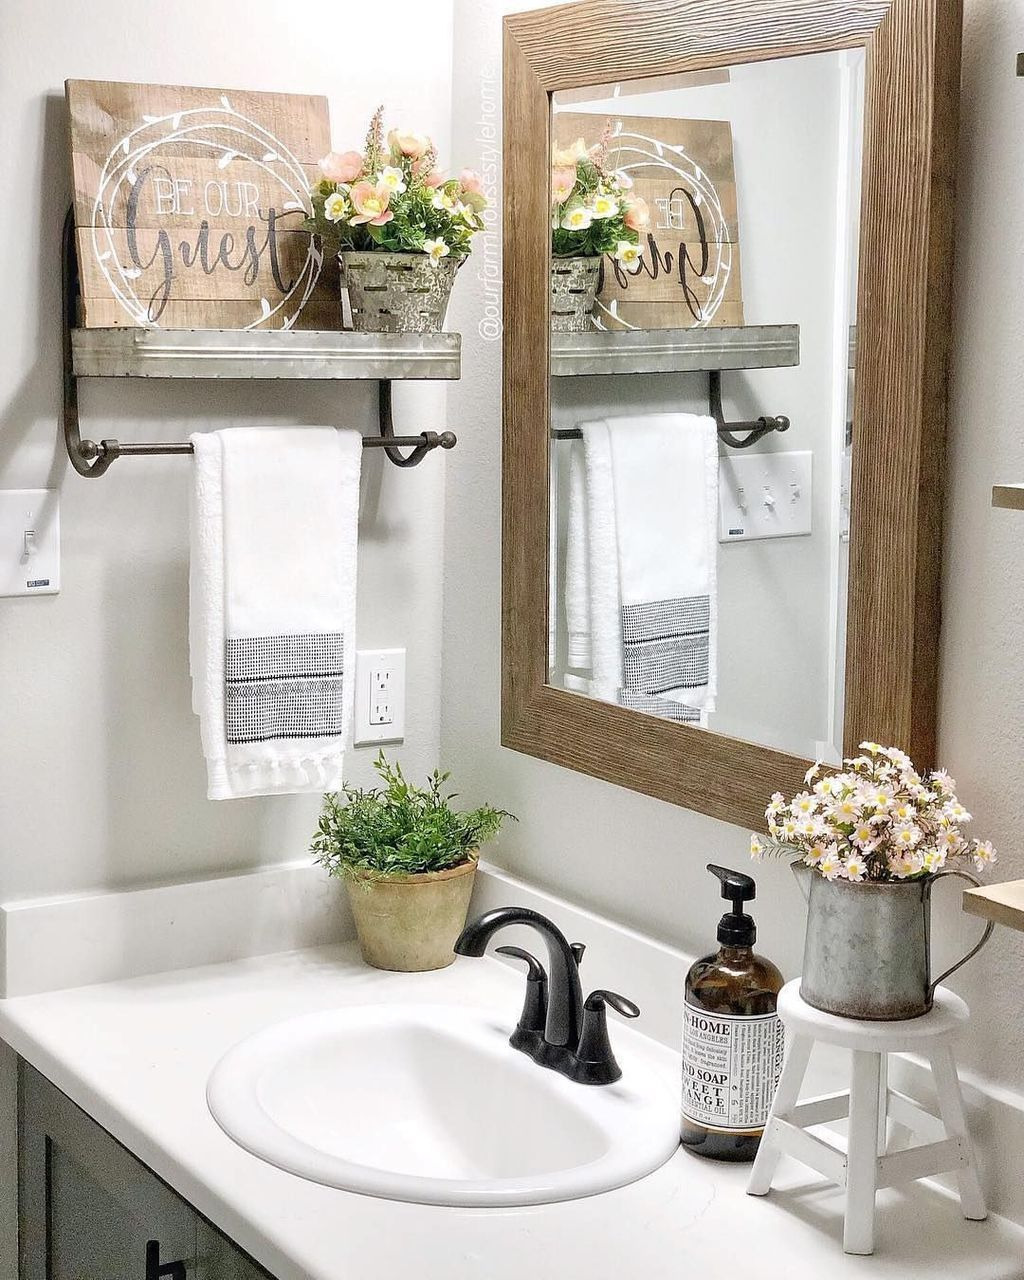 Bathroom Decorating Pictures Awesome 44 Perfect Spring Bathroom Decorating Ideas